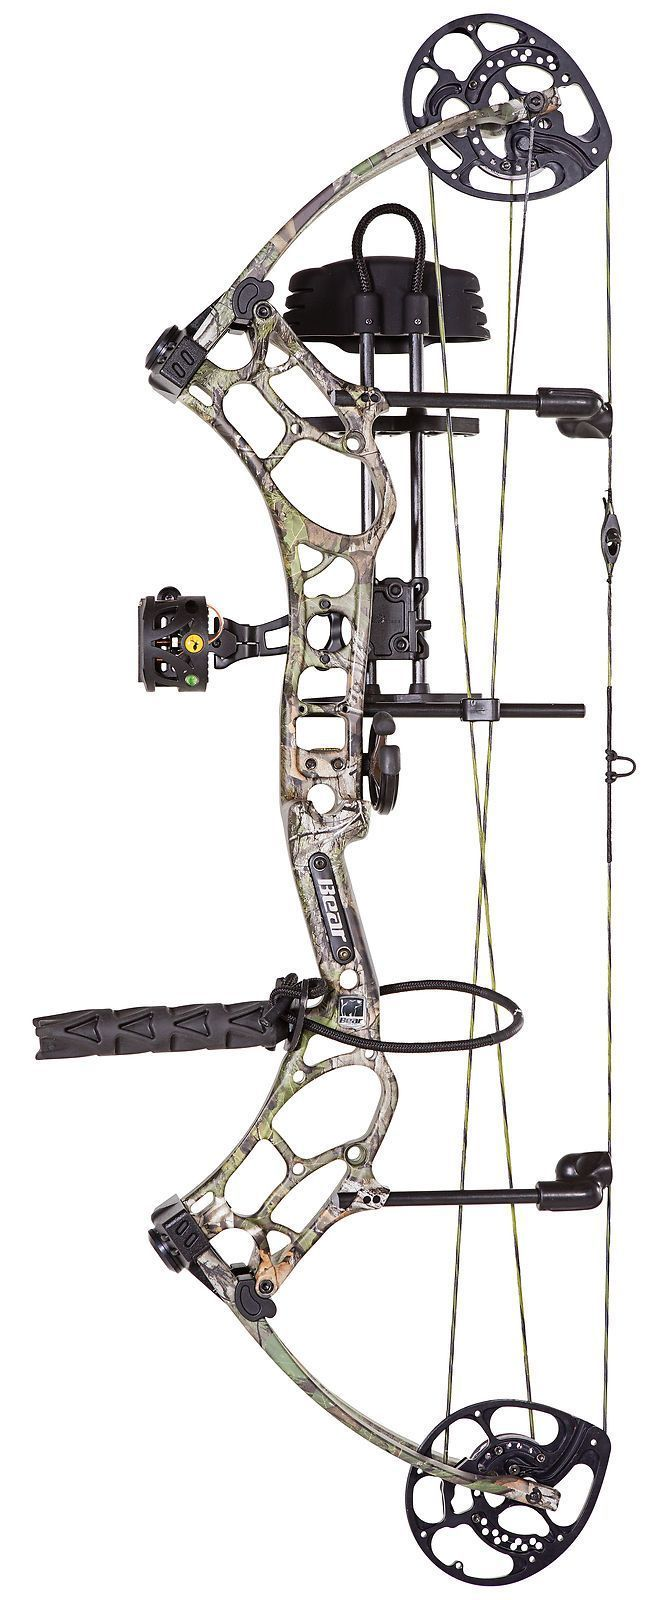 Bear Archery Threat Compound Bow Package